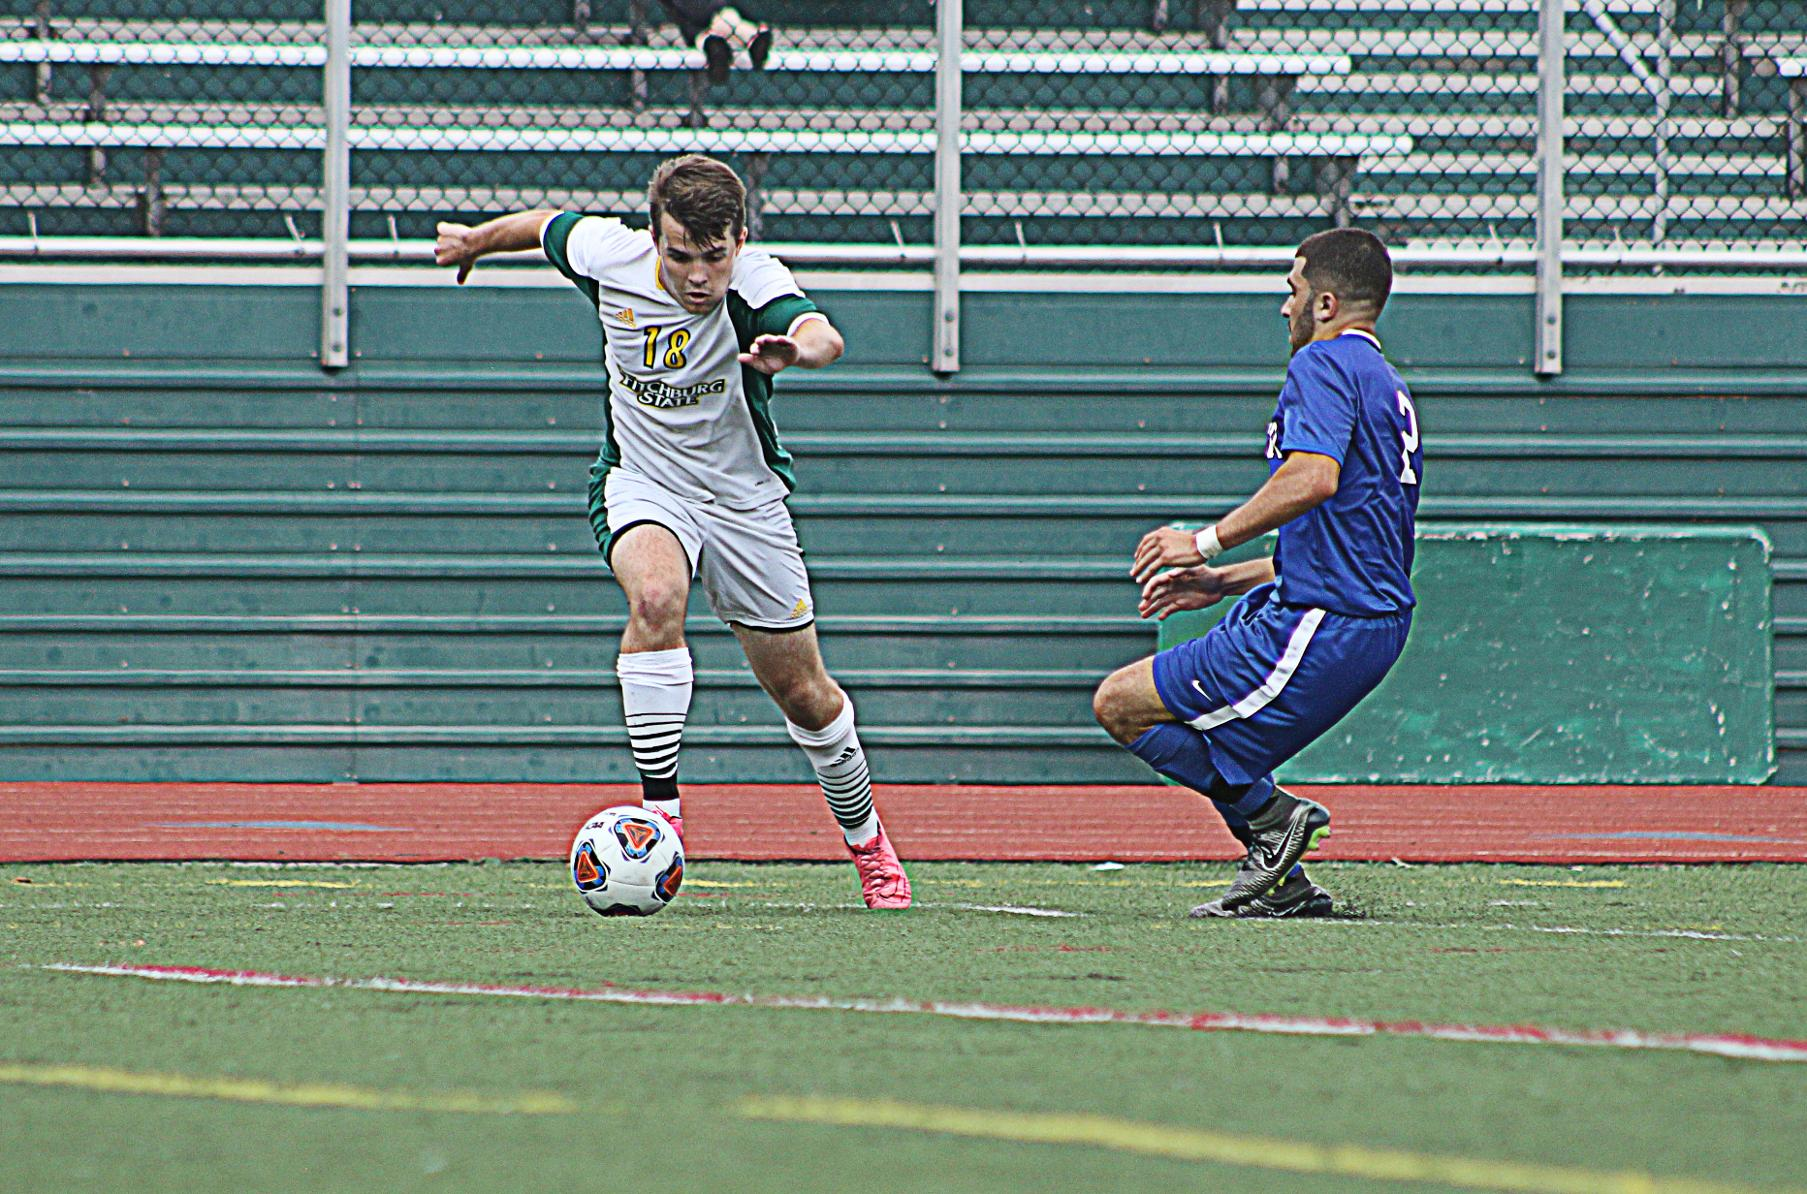 Fitchburg State Shuts Down Becker, 5-0